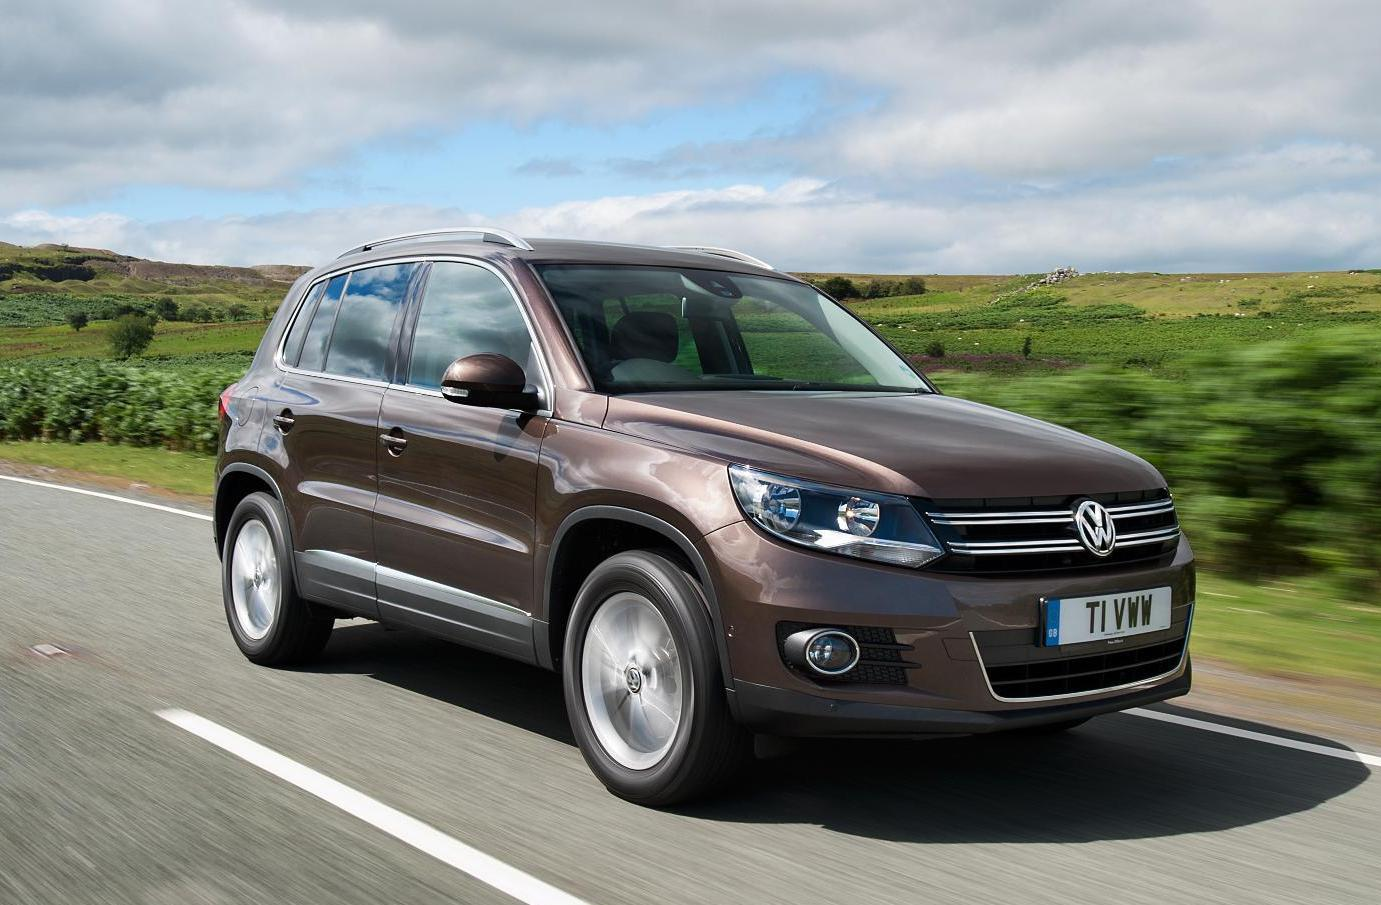 volkswagen tiguan suv price specs photos launch date in india. Black Bedroom Furniture Sets. Home Design Ideas